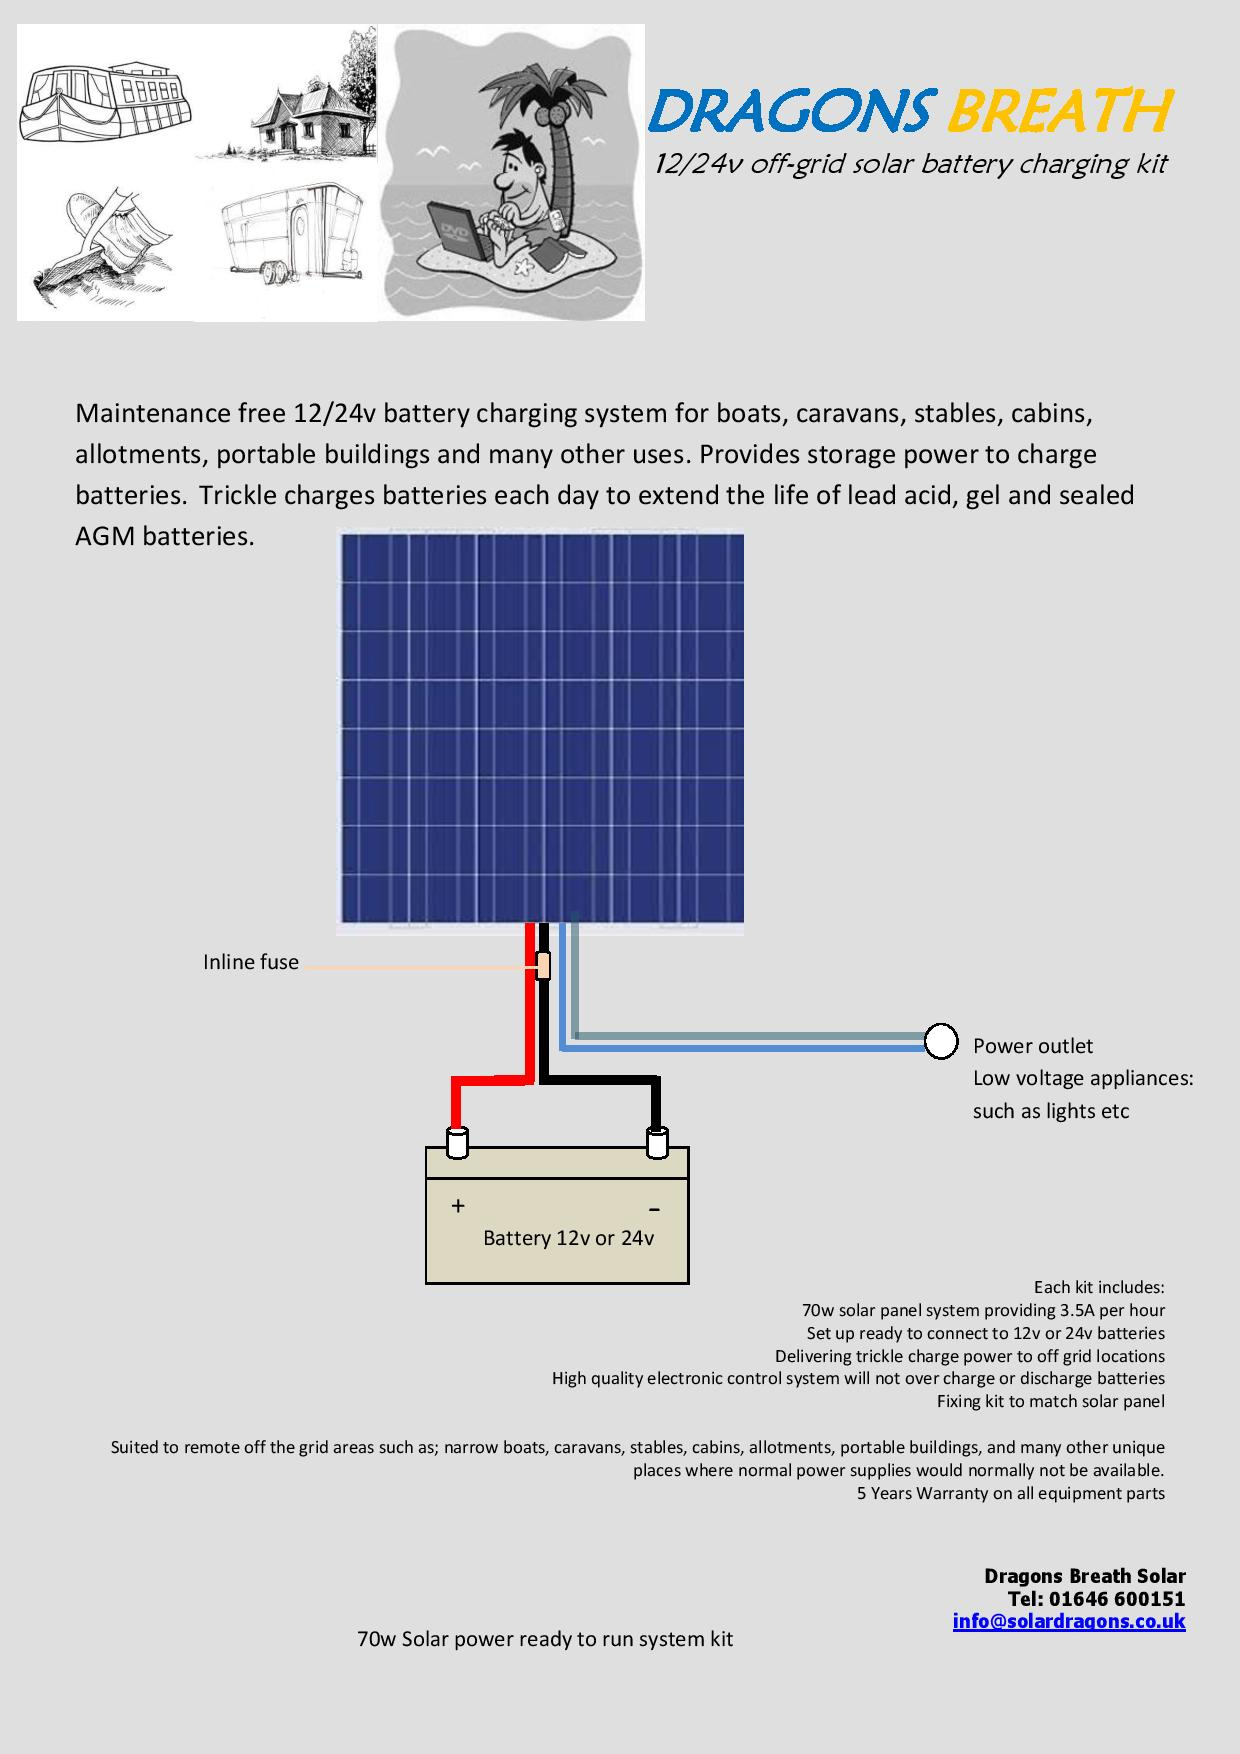 Solar powered battery trickle charging system for boats, cabins, allotments, mobile homes